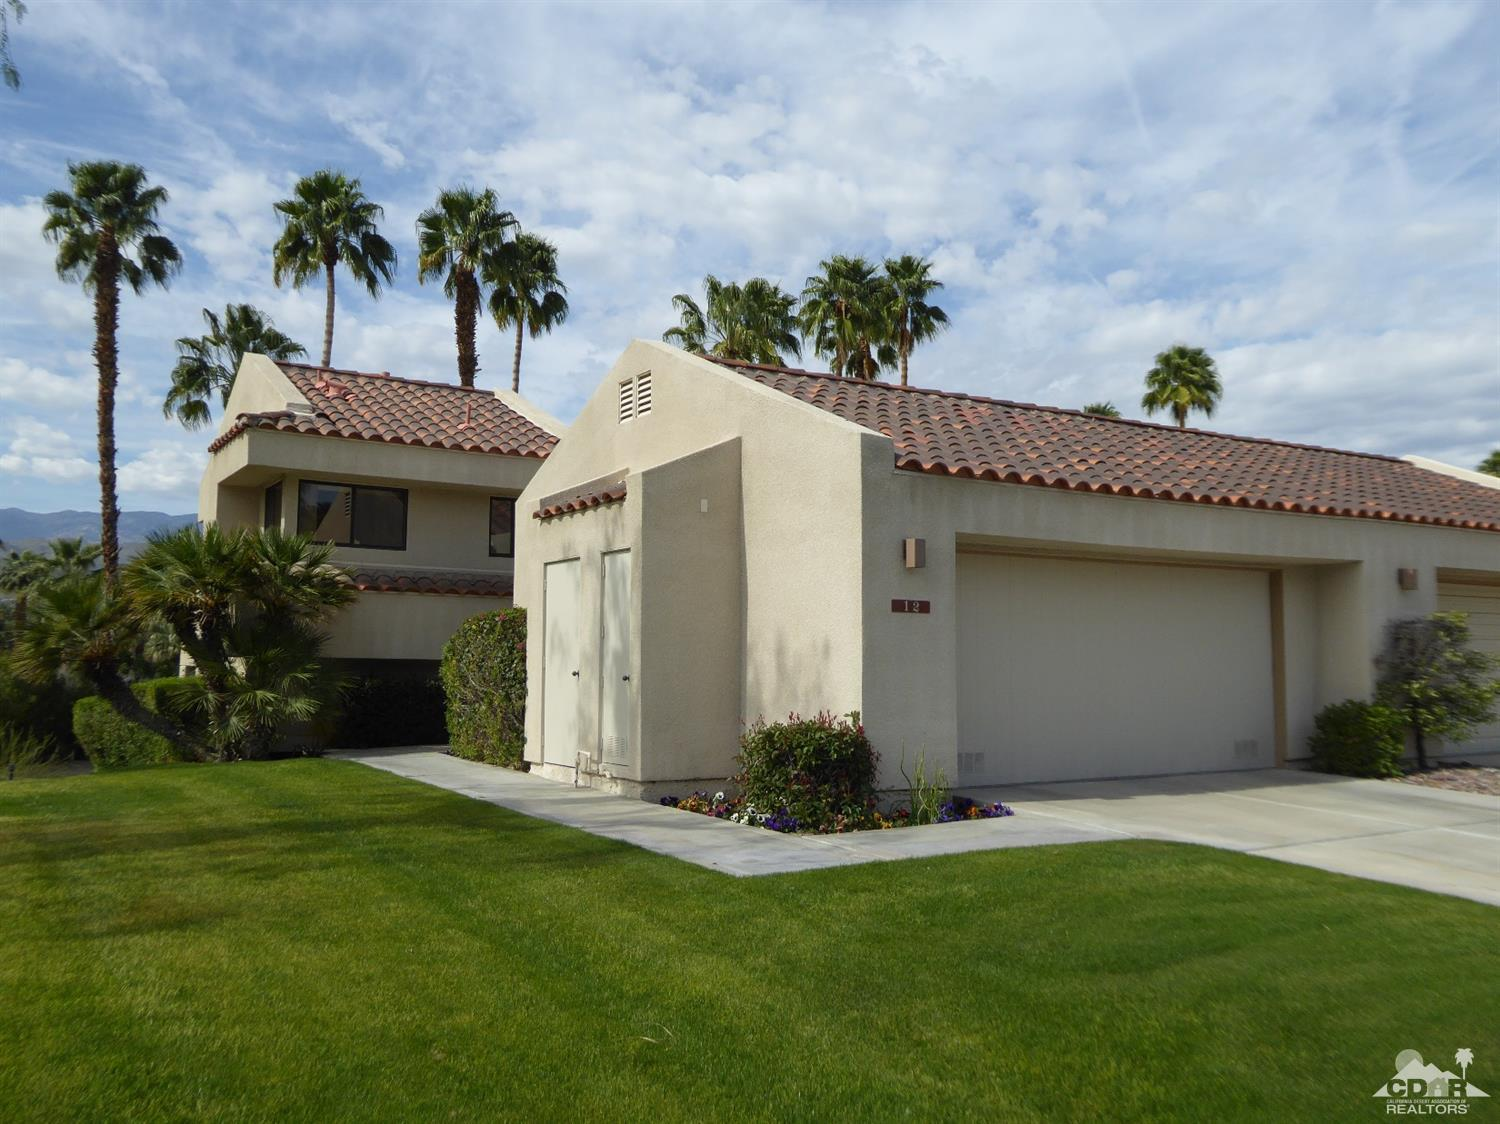 12 Mission, Rancho Mirage 92270